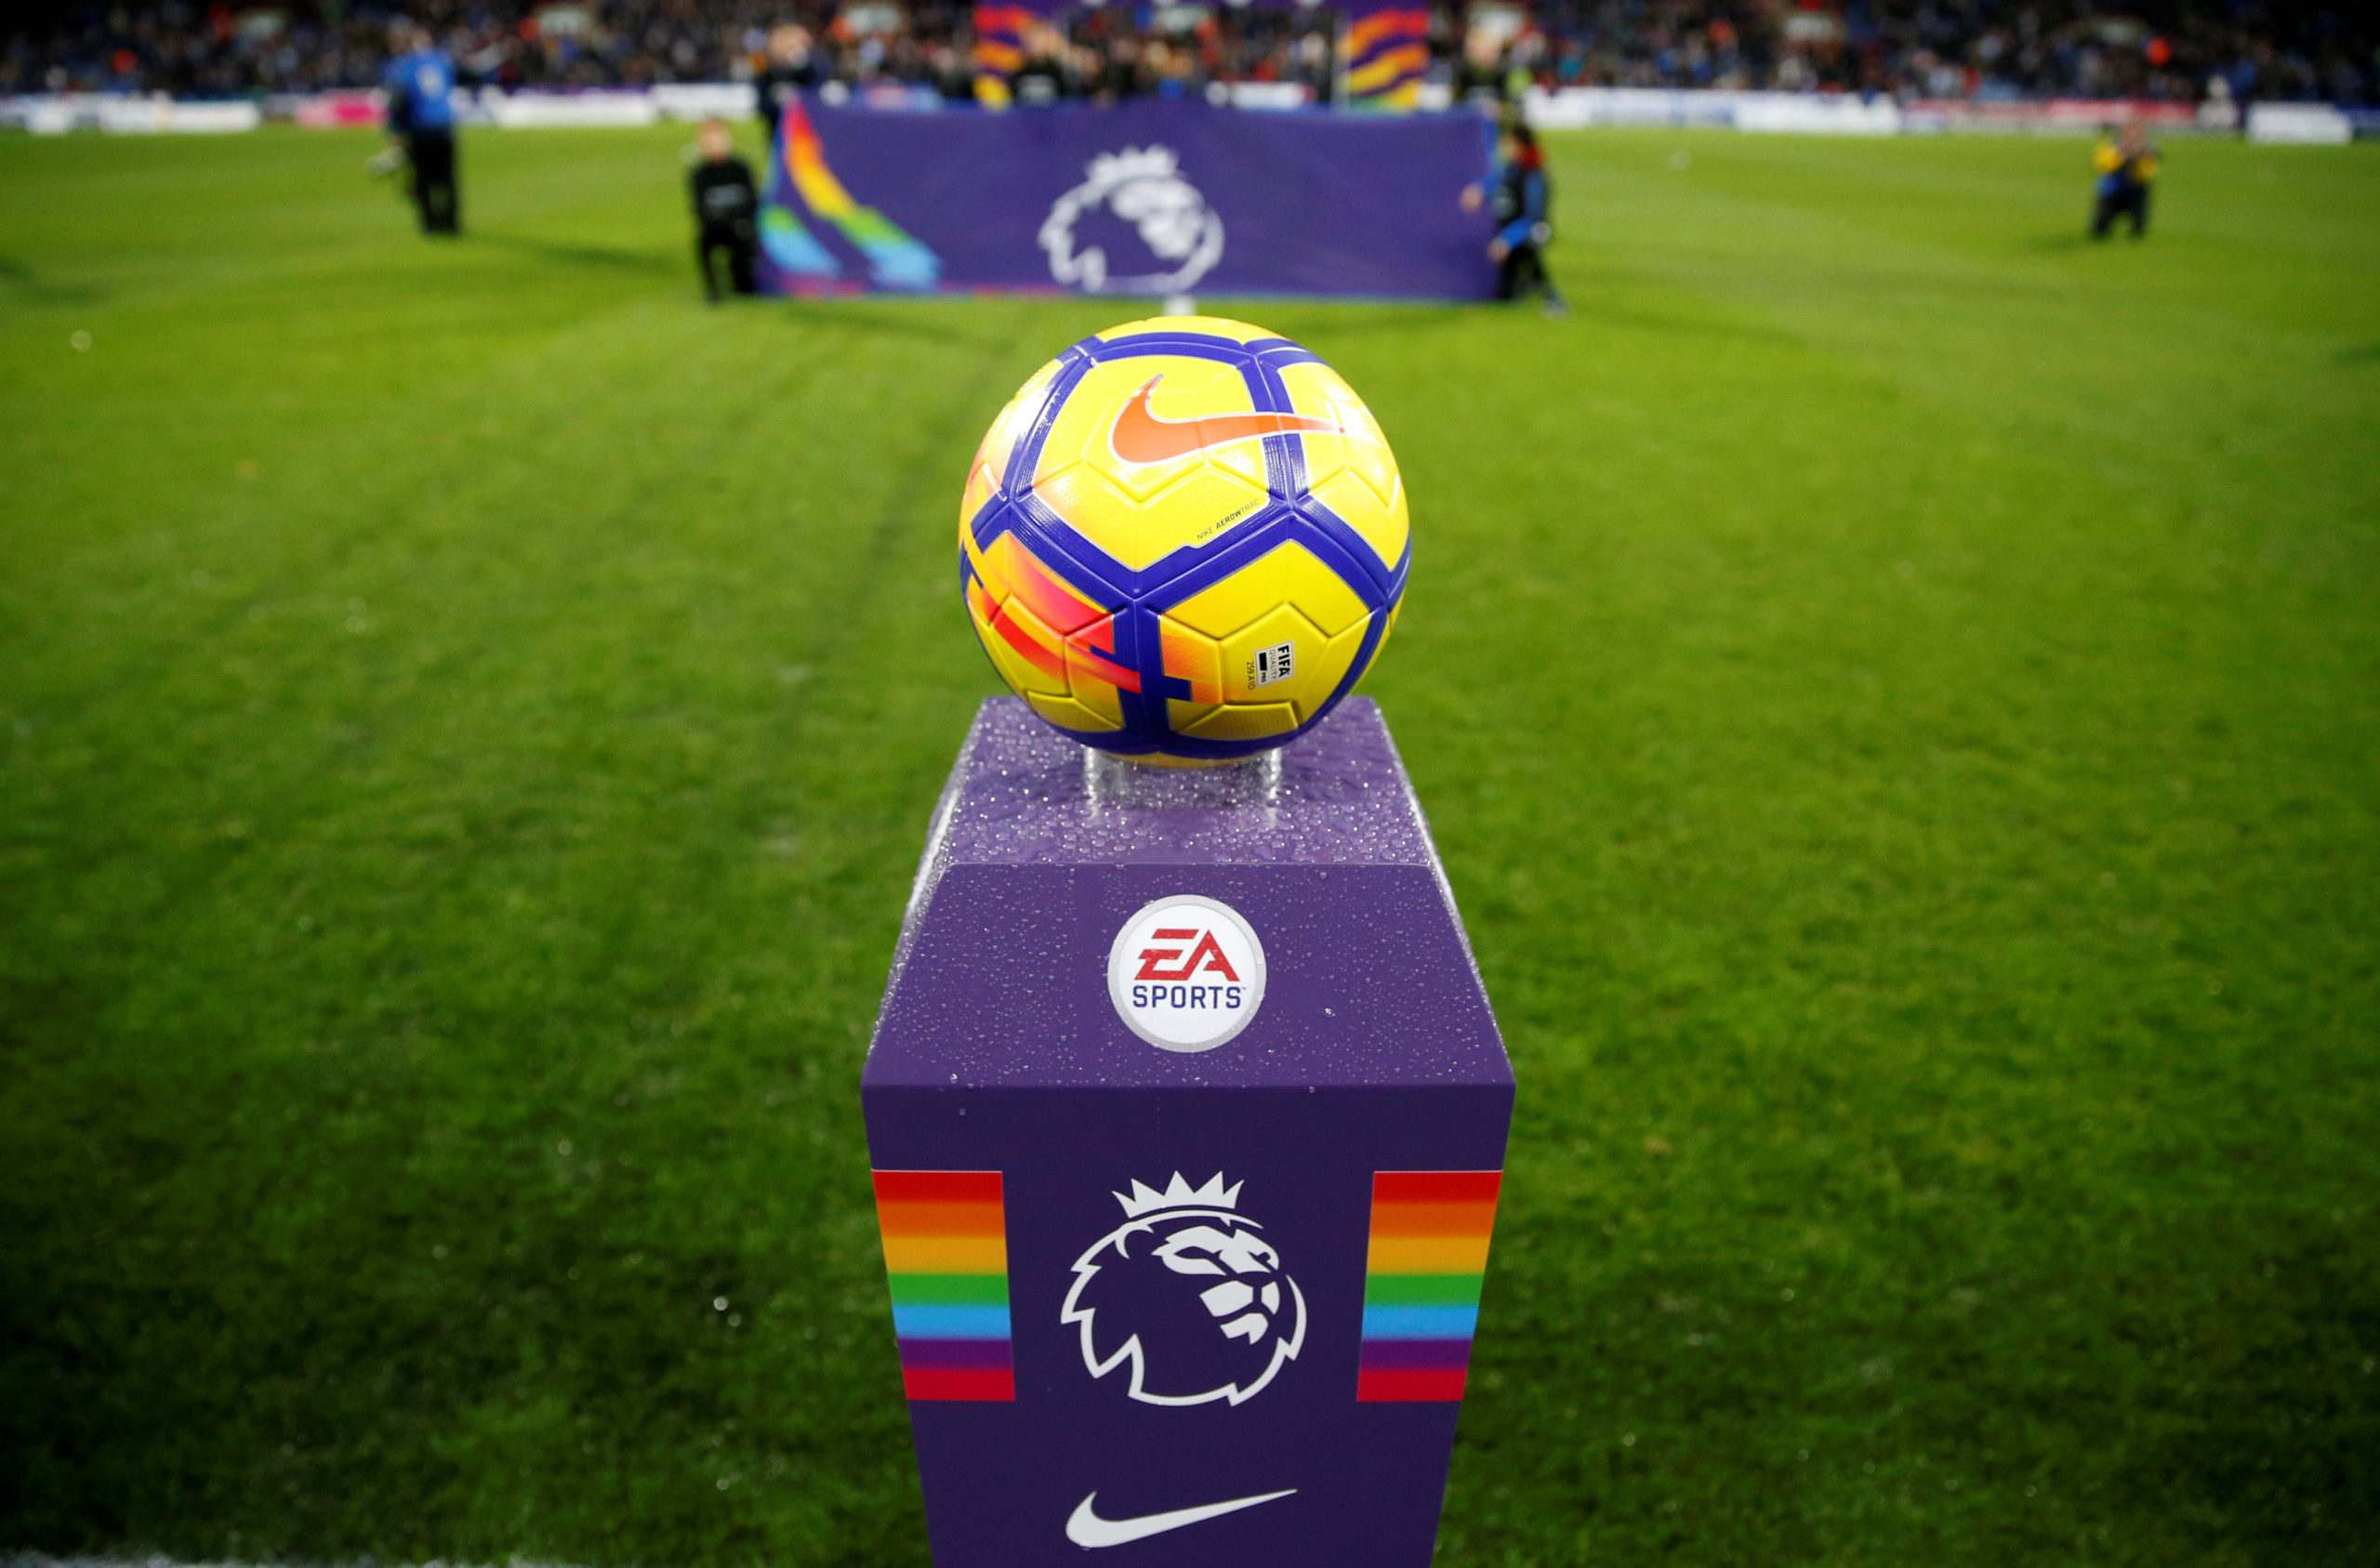 FPL confirm deadlines for Gameweeks 31-35 will remain unchanged